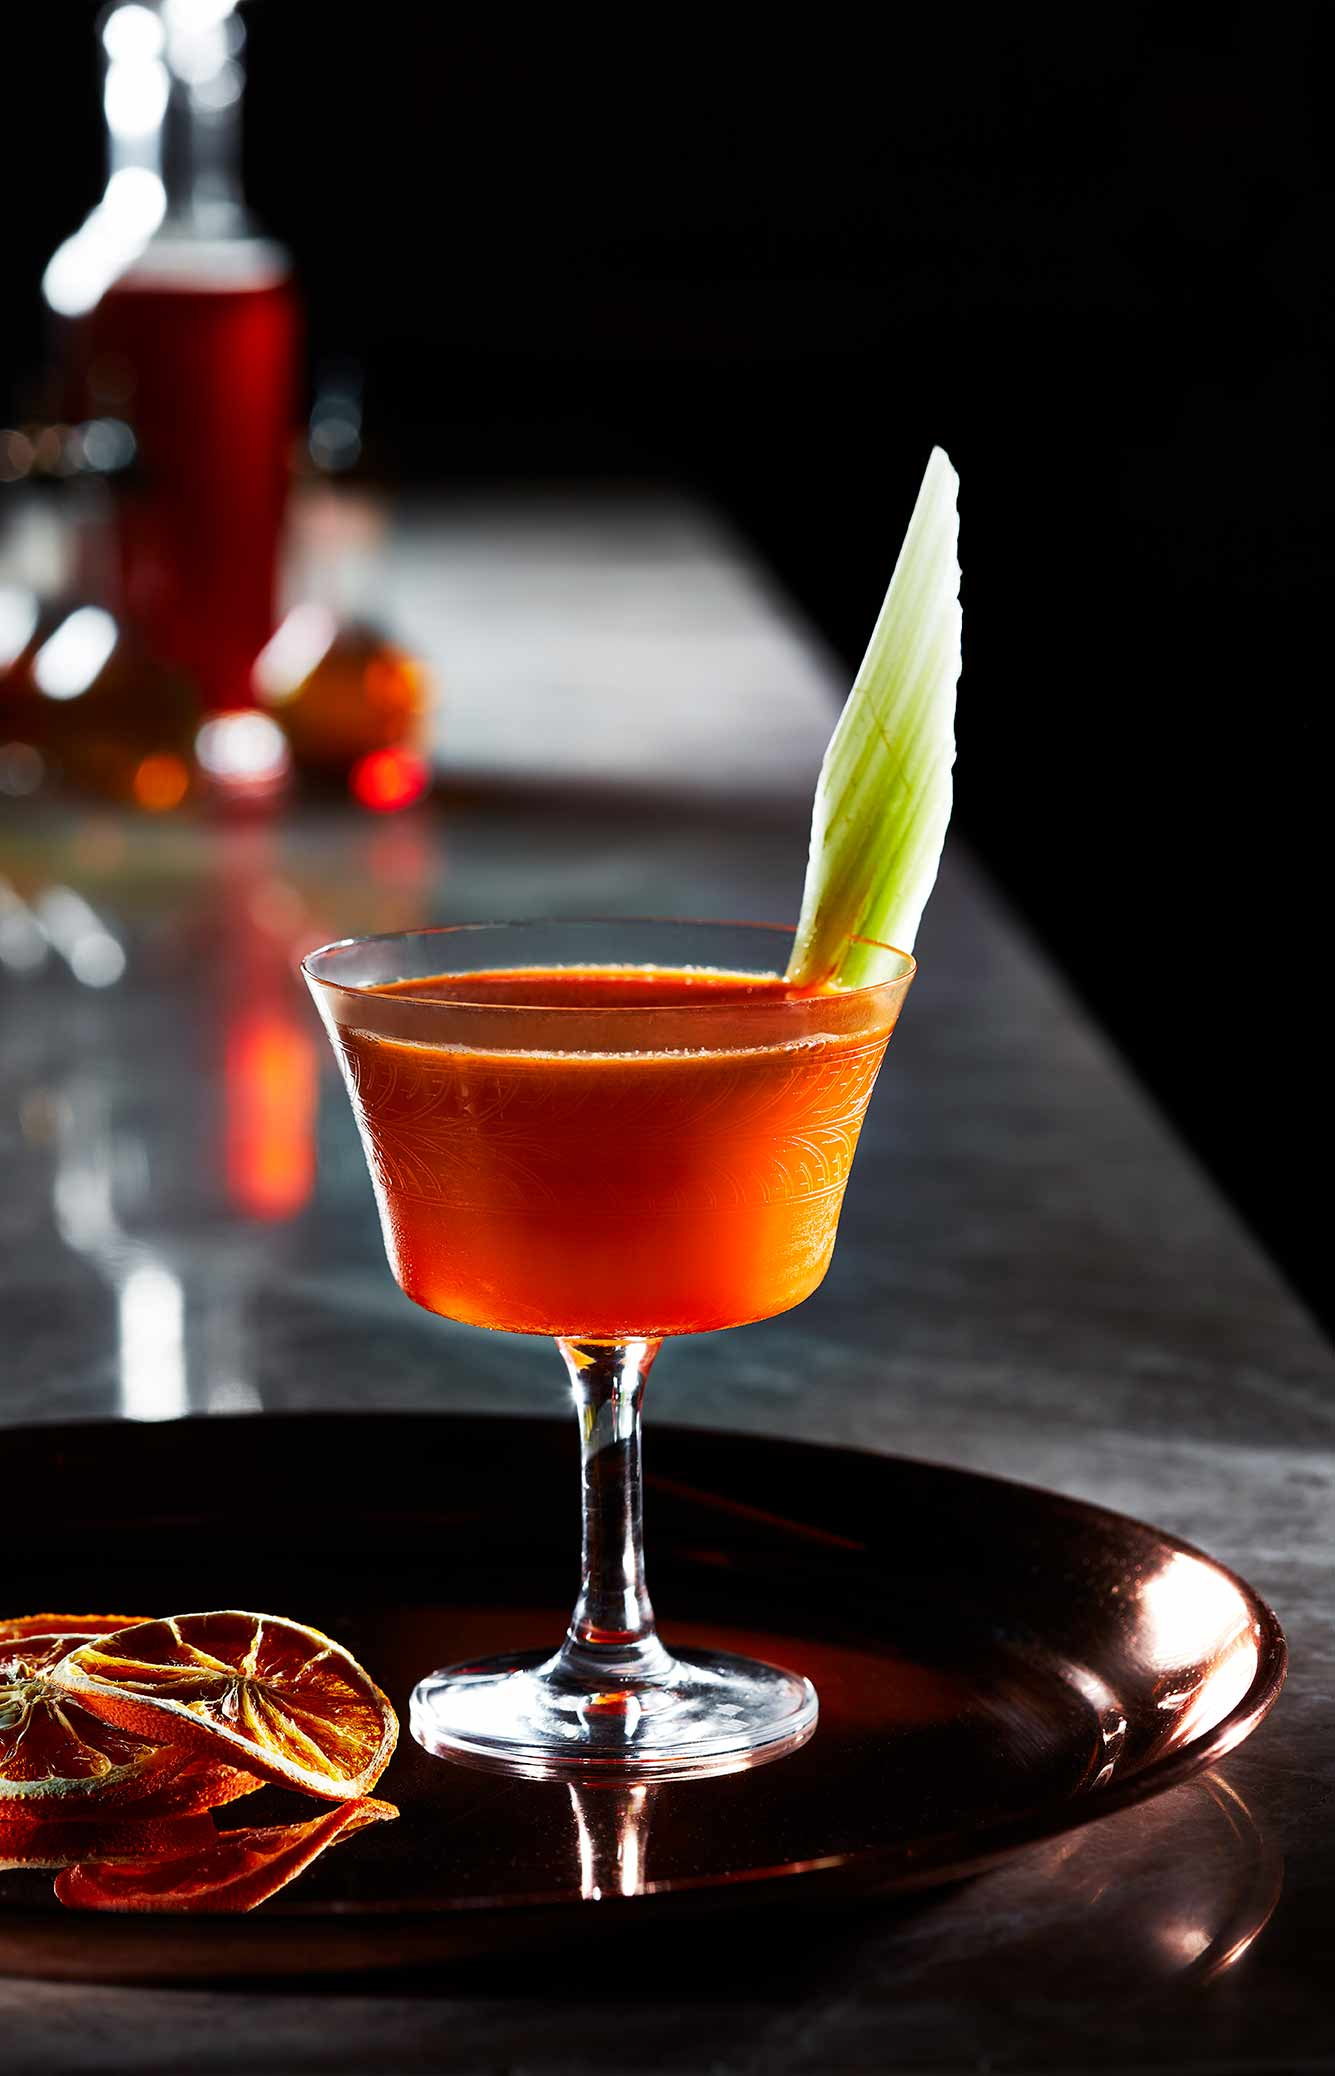 CARROT_COCKTAIL_020.jpg